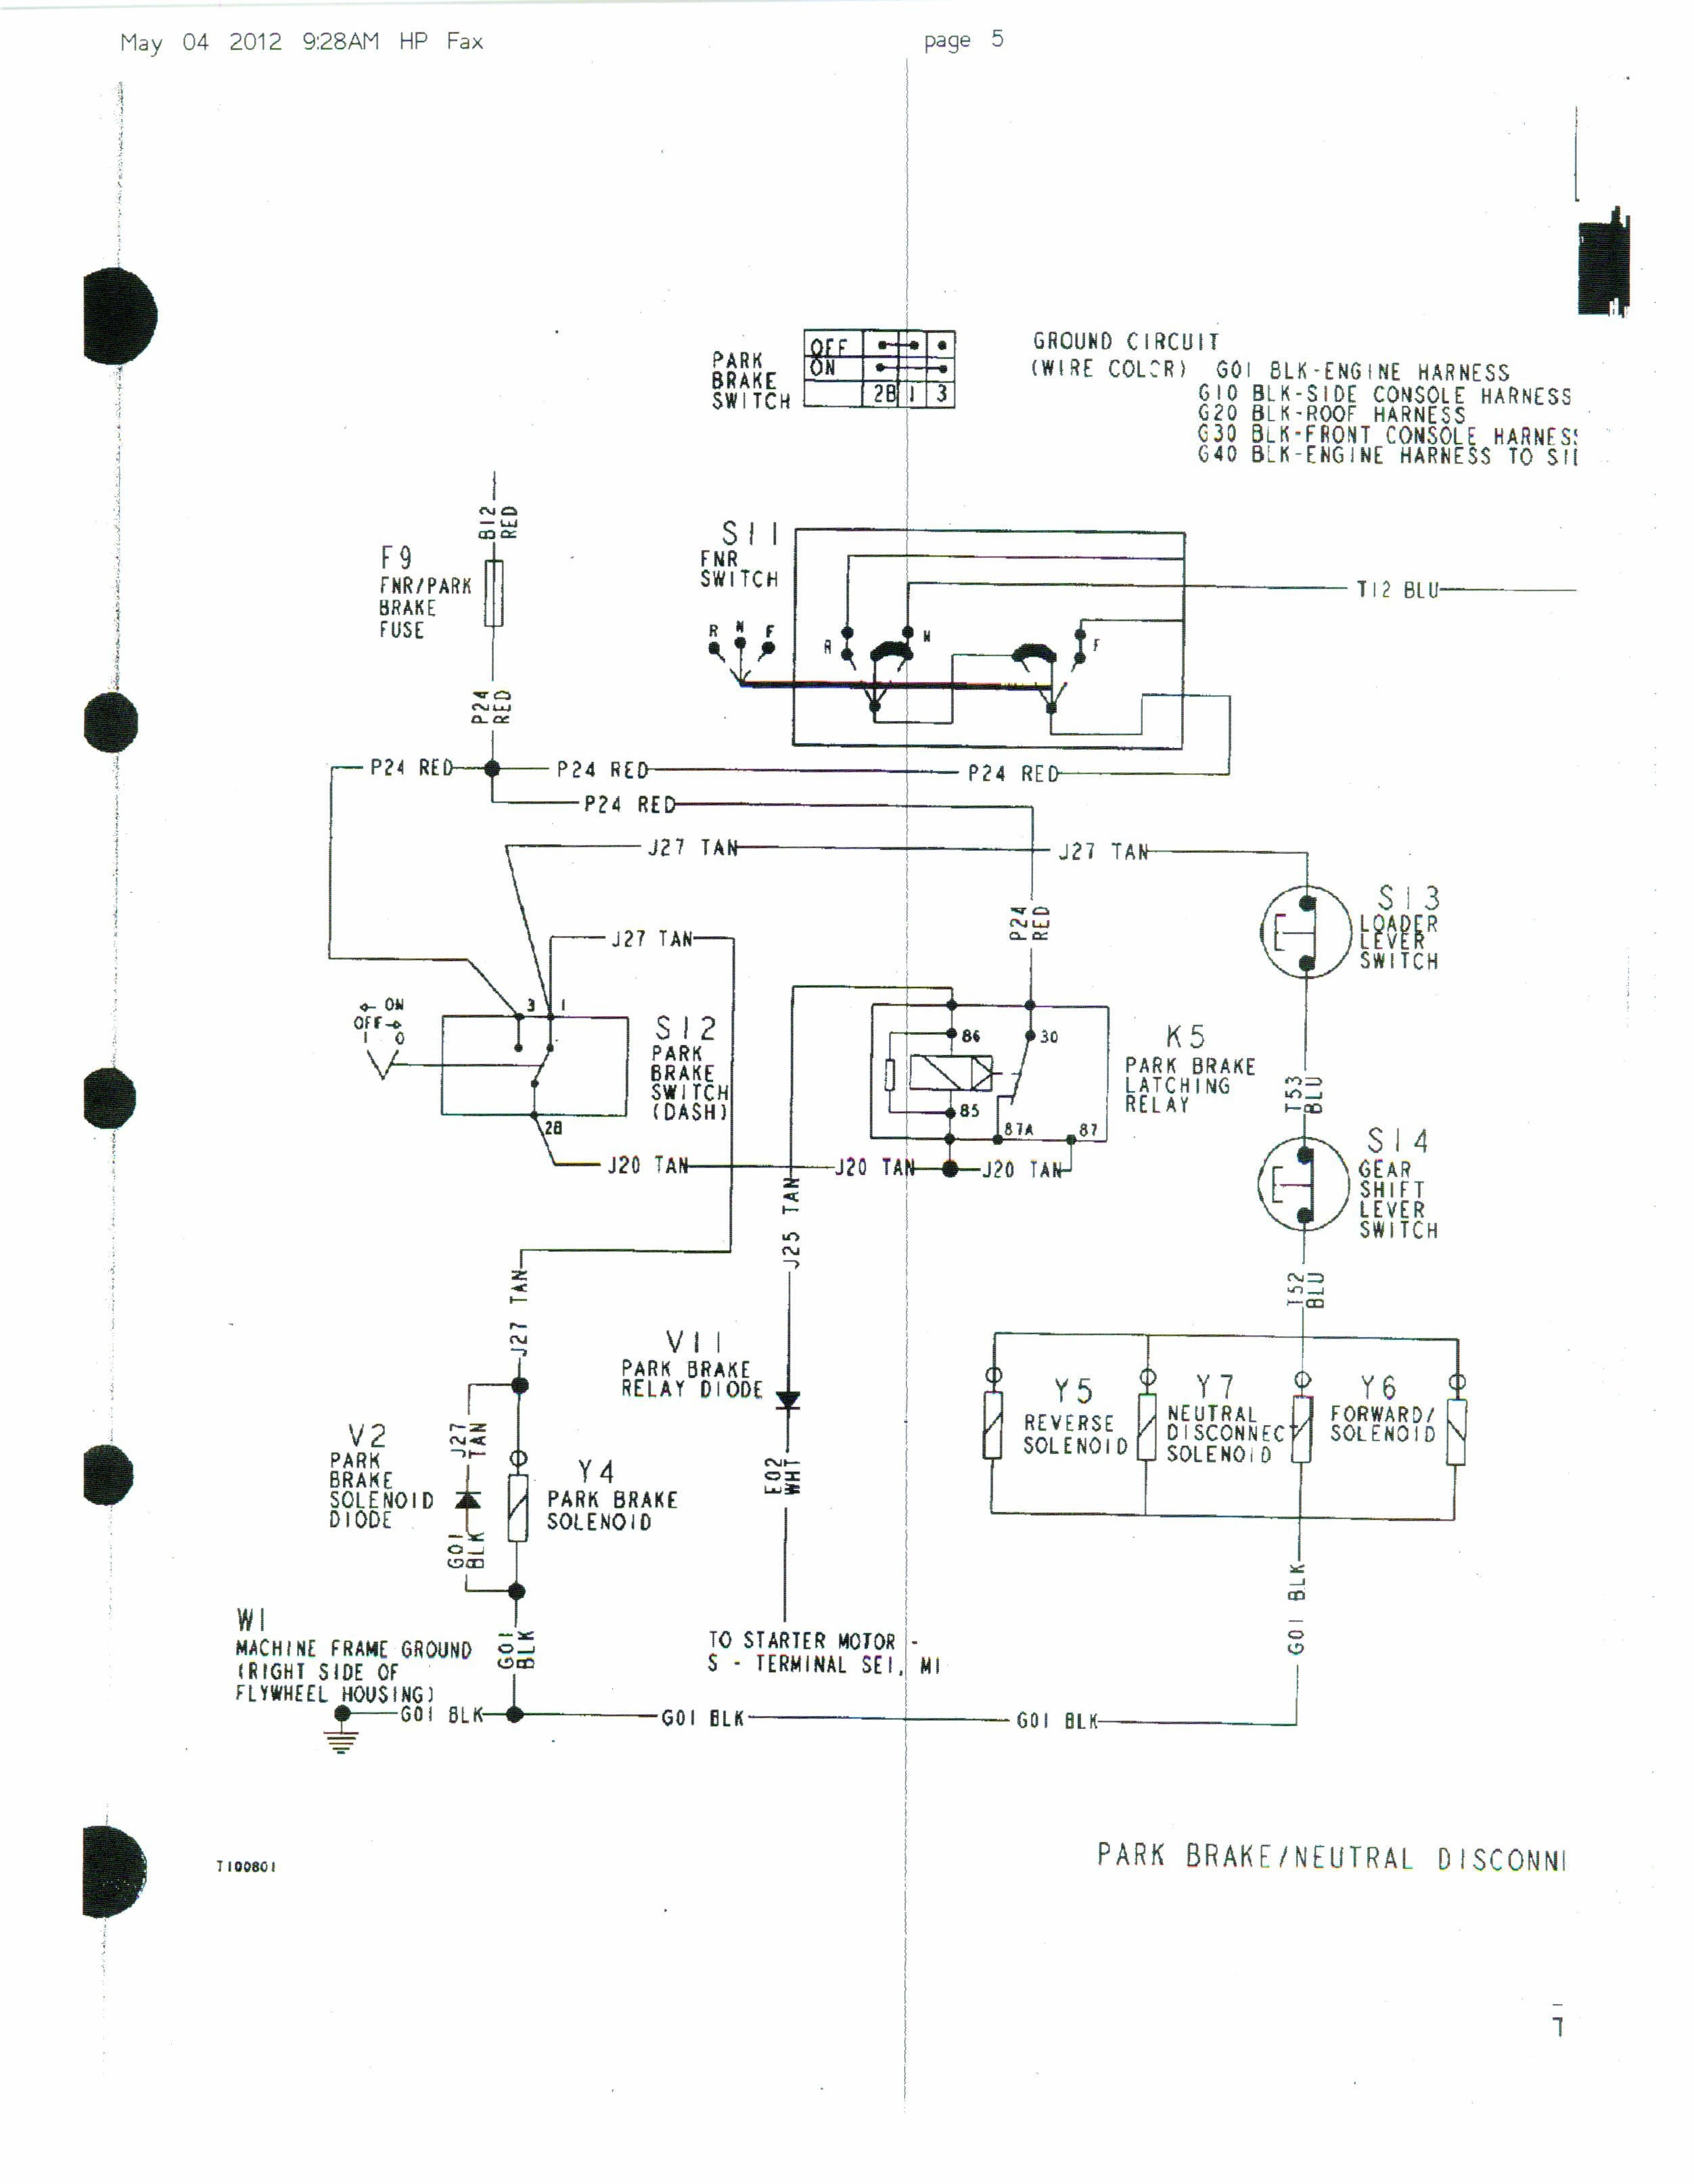 Emergency Brake Diagram Famous Parking Brake Switch Wiring Diagram Contemporary Electrical Of Emergency Brake Diagram